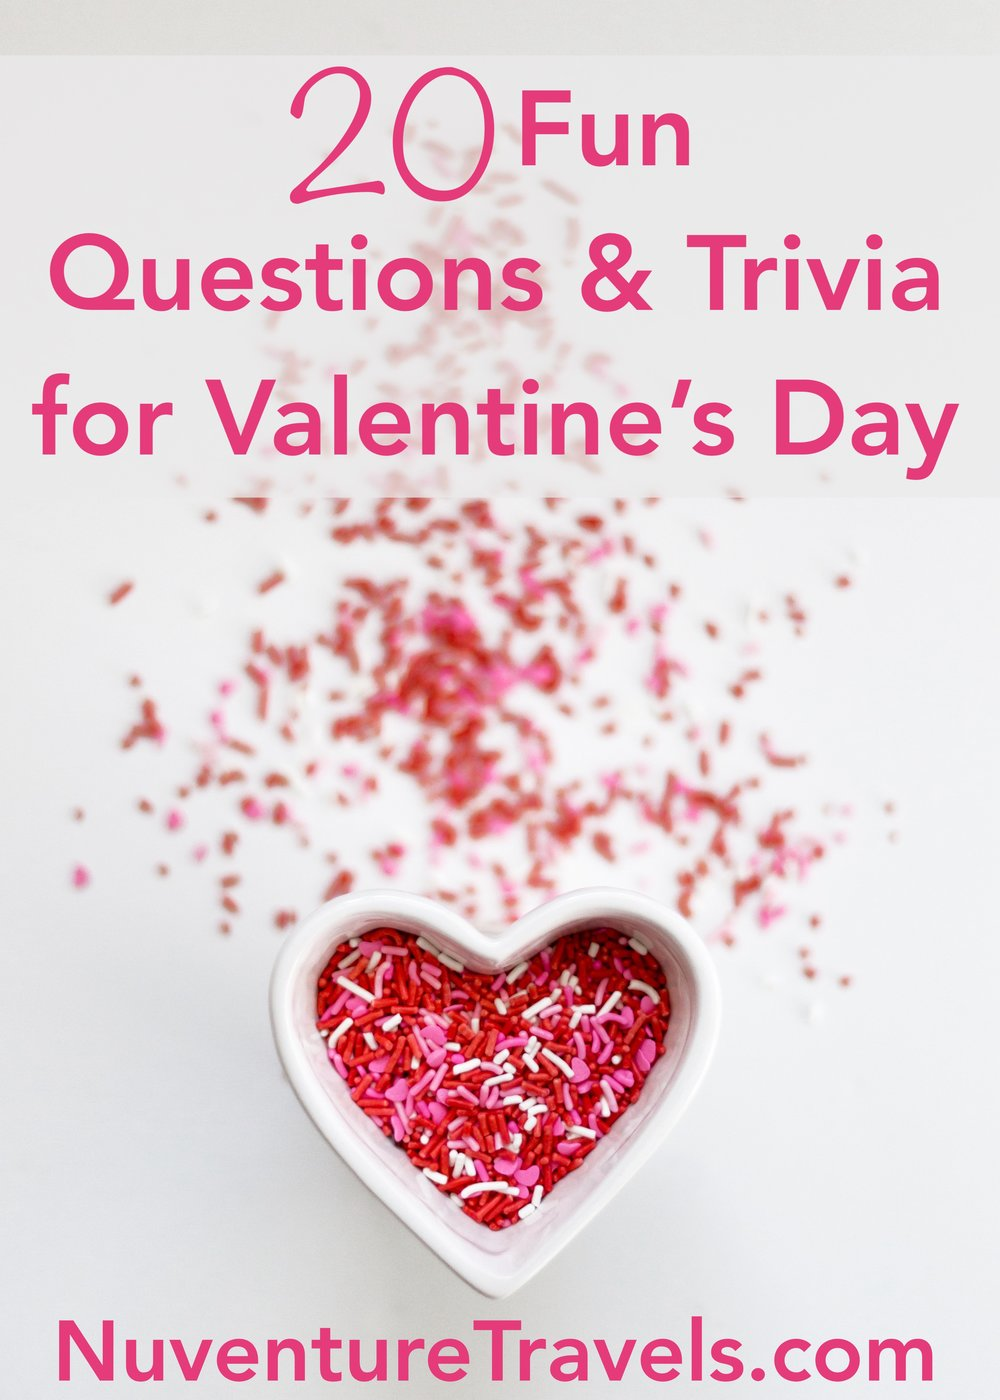 20 Fun Questions & Trivia for Valentine's Day Date Night